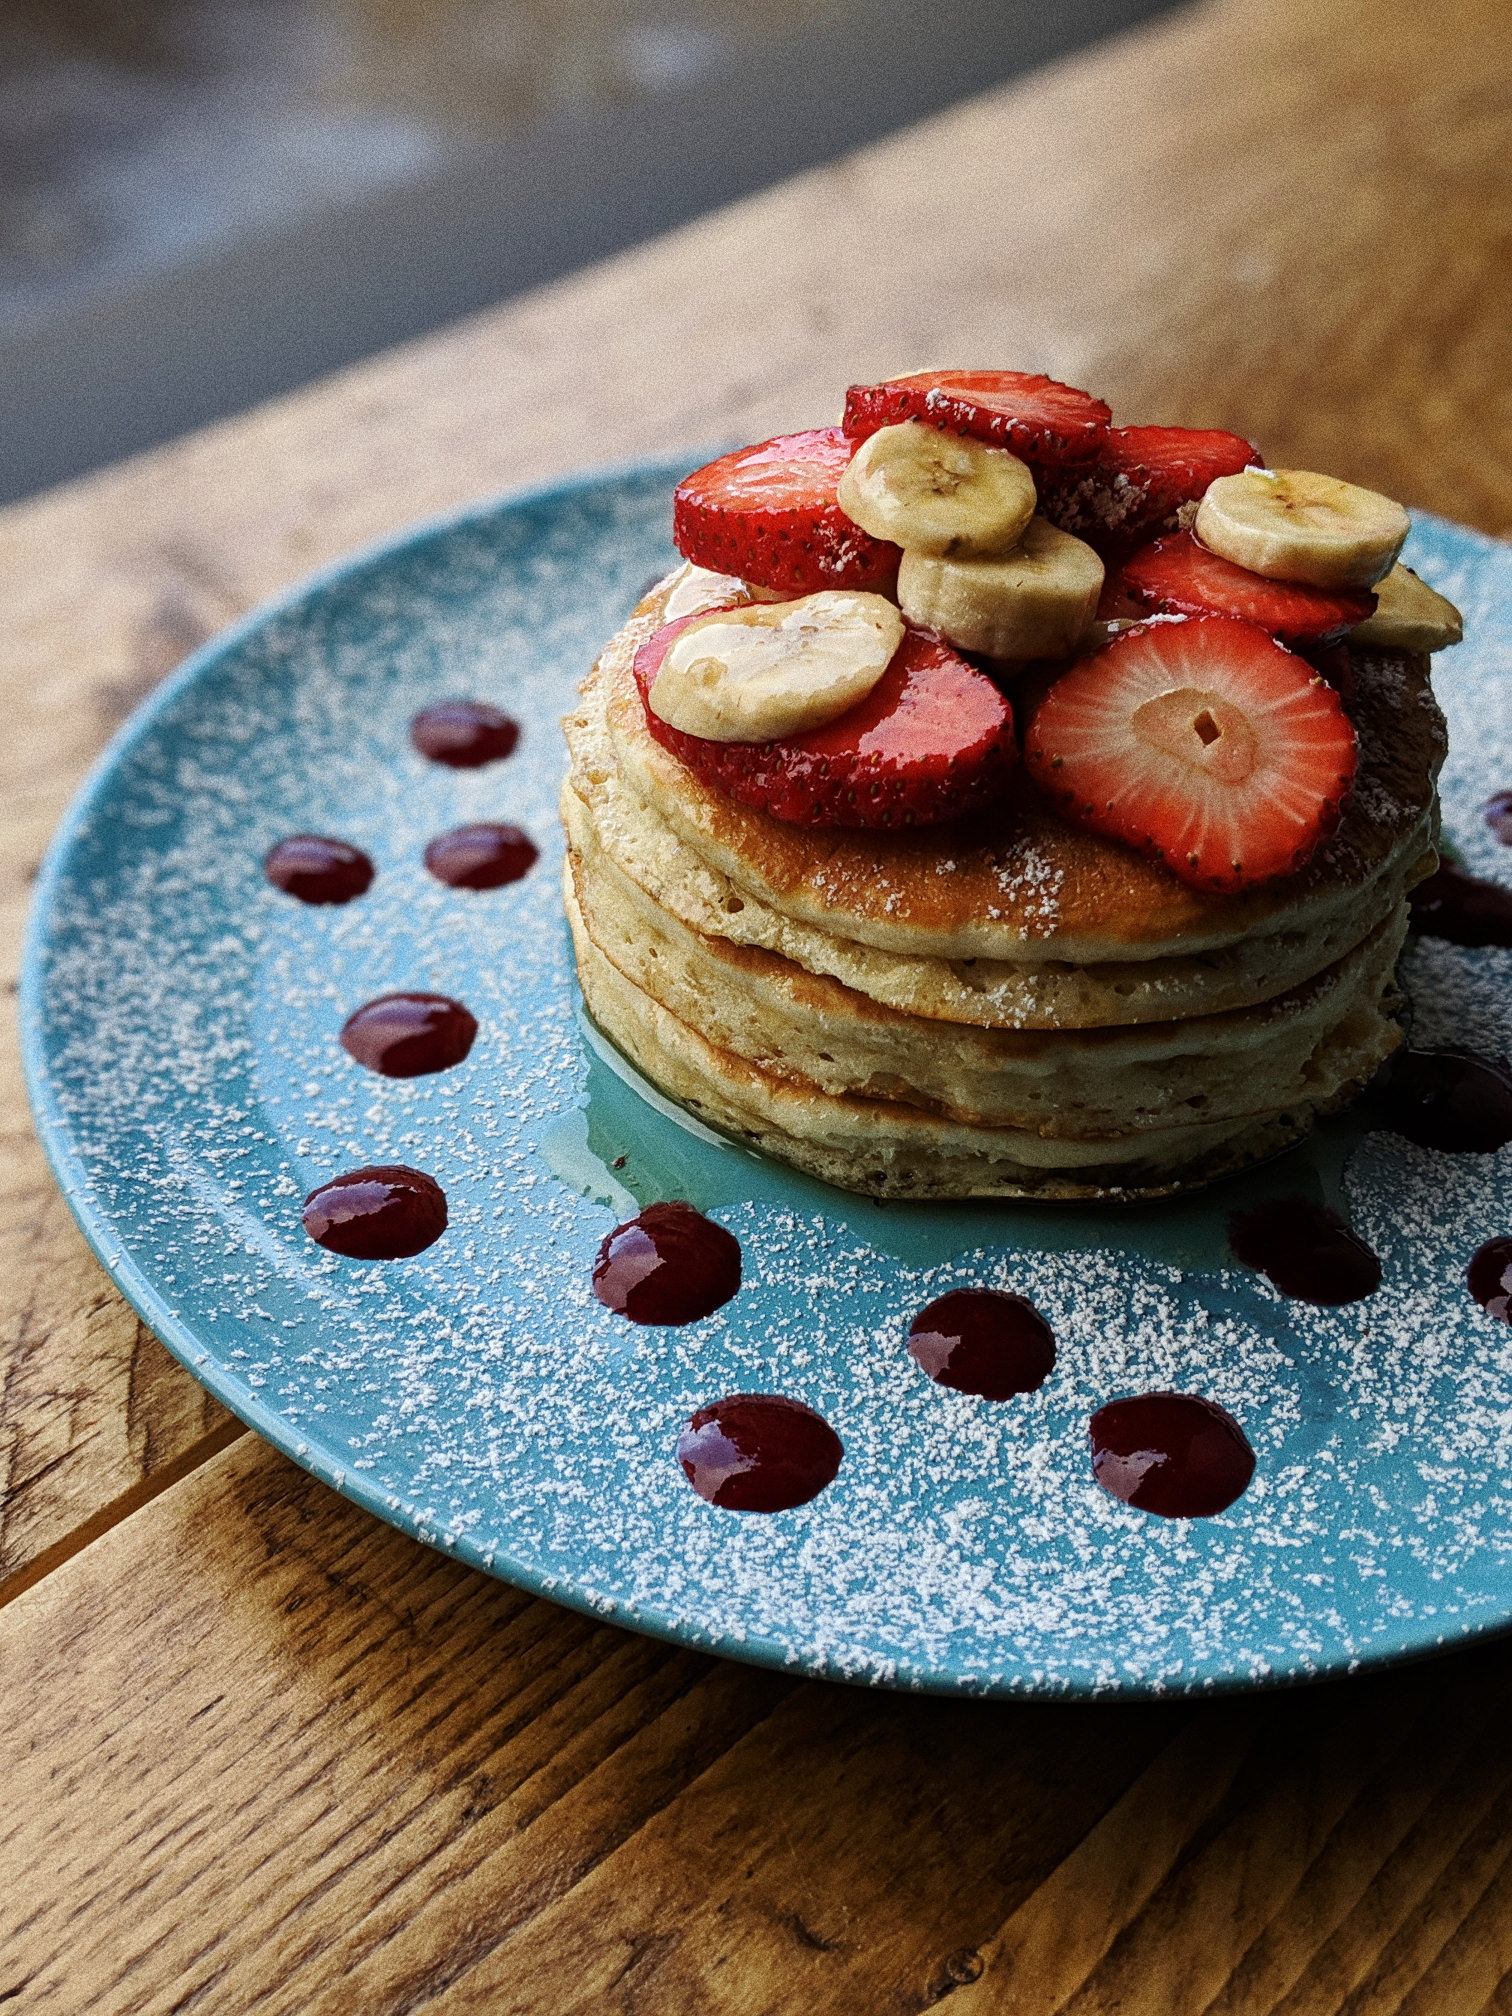 Pancake stack with strawberries, bananas, and maple syrup.